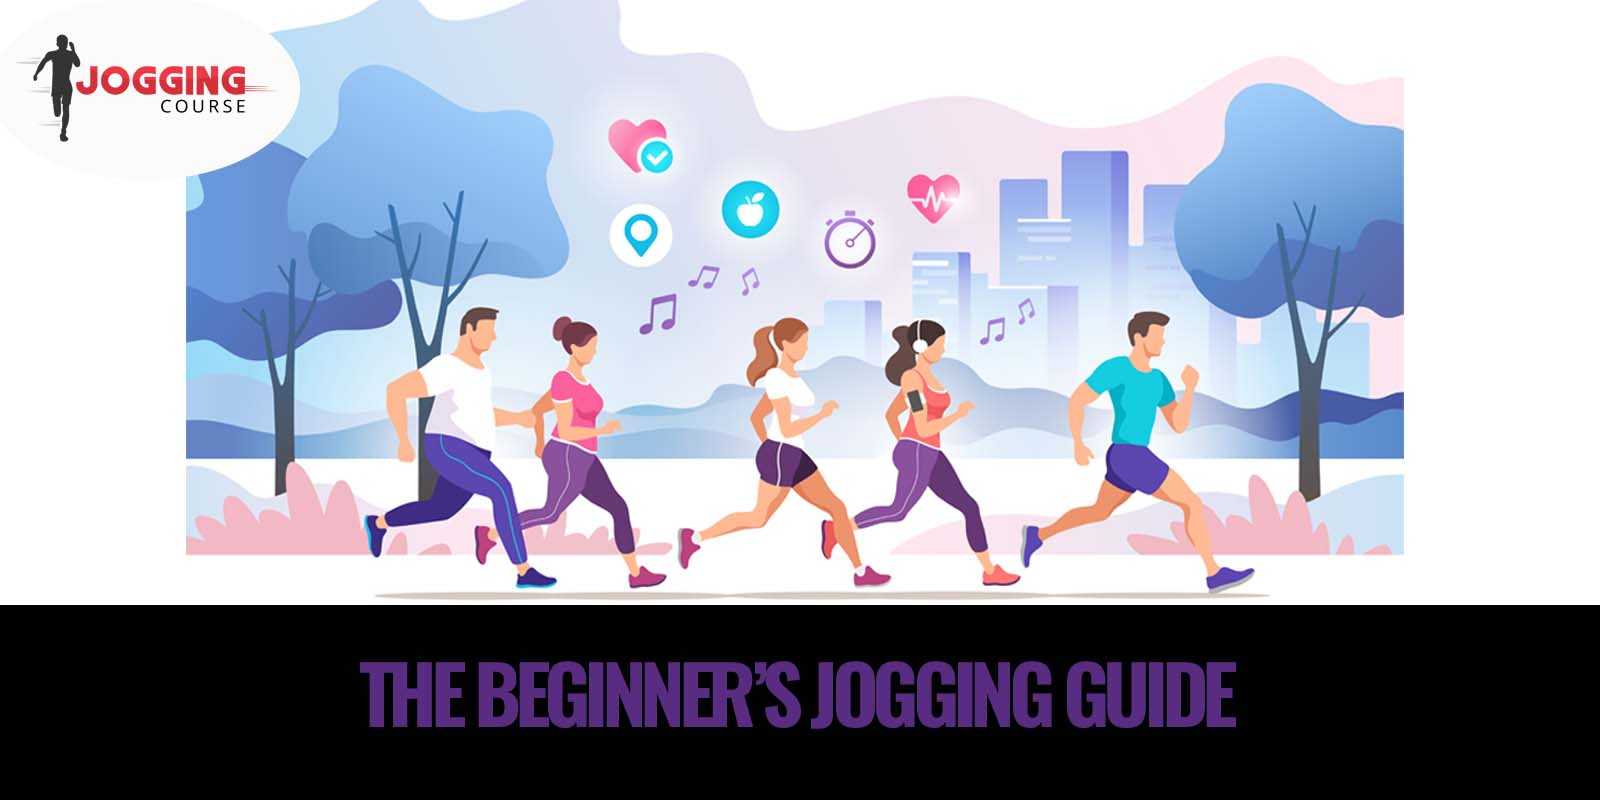 The Beginner's Jogging Guide